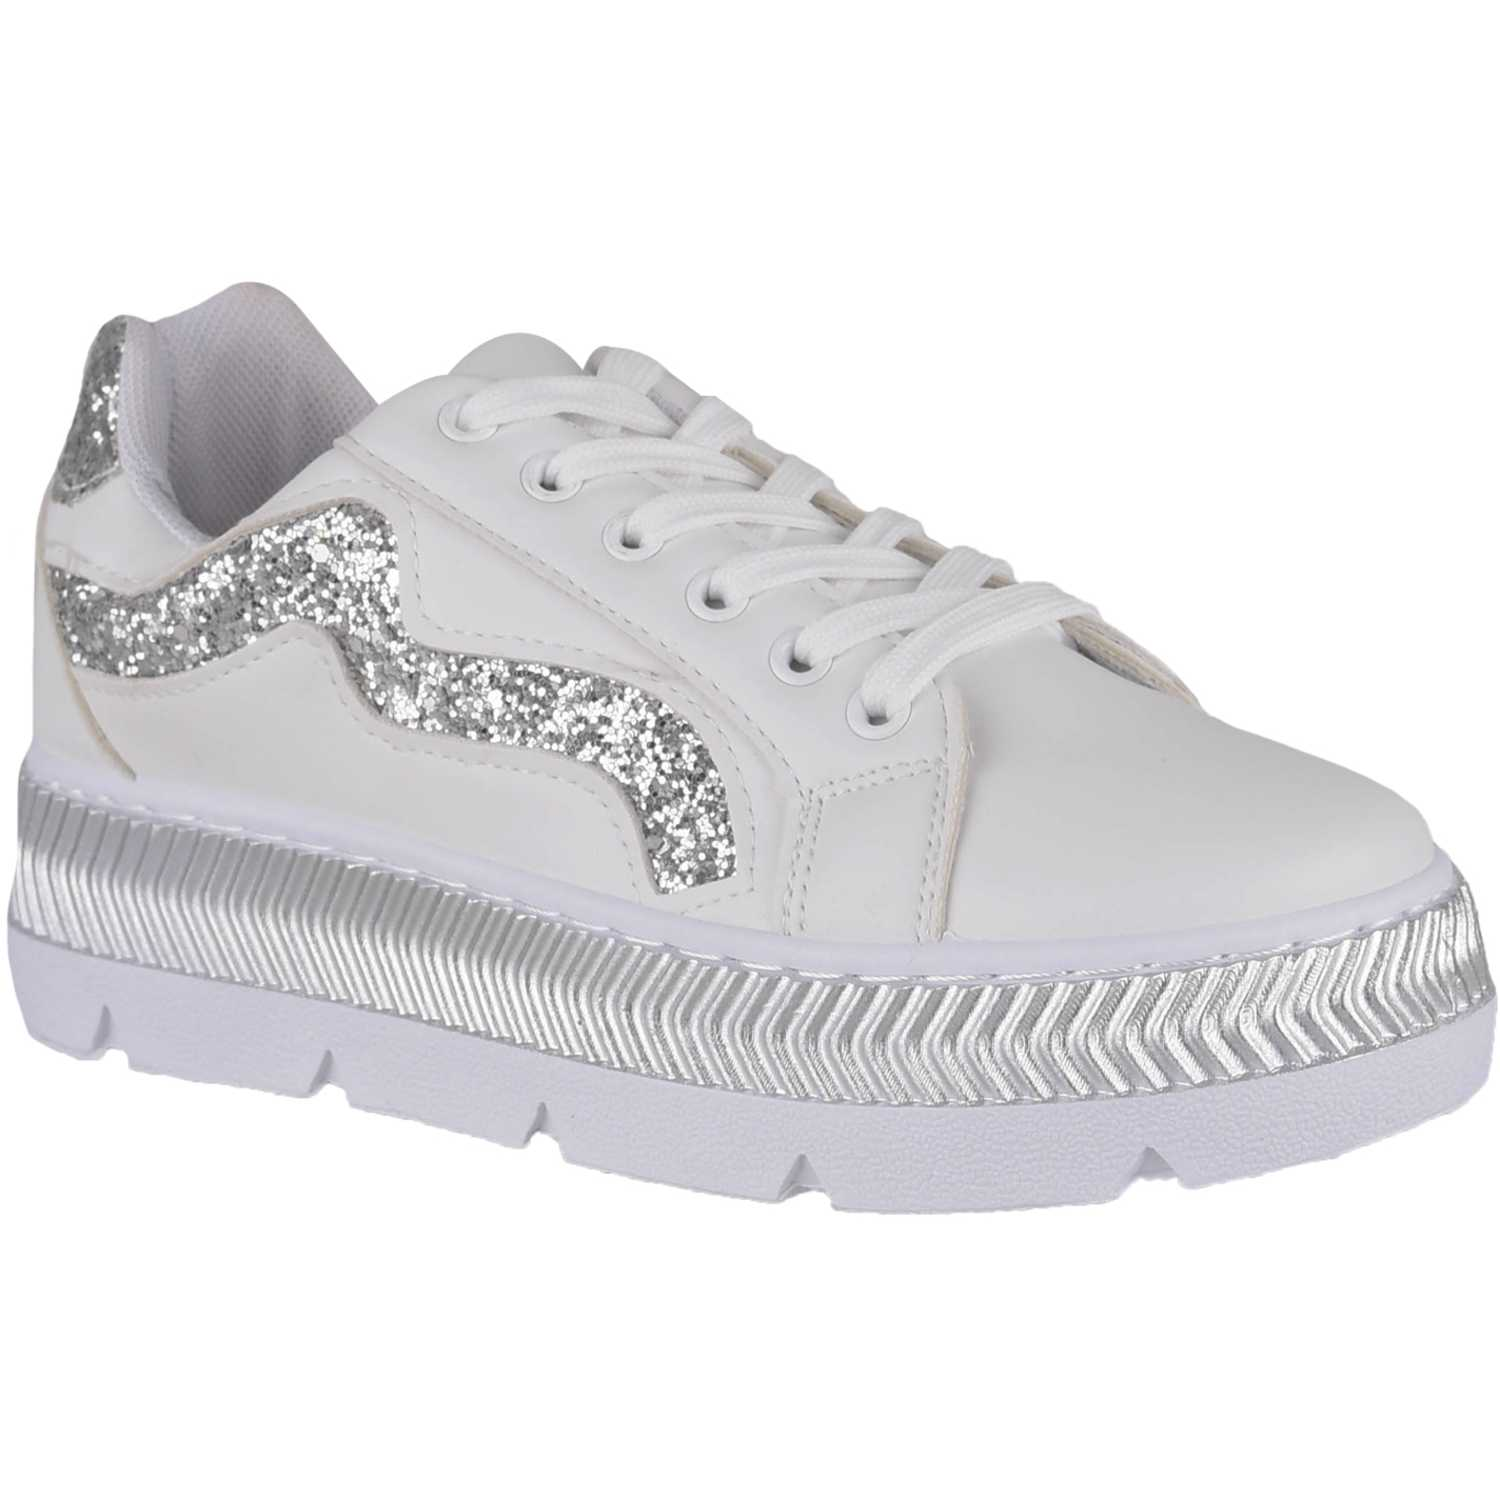 Just4u ZC 146 Blanco Zapatillas Fashion